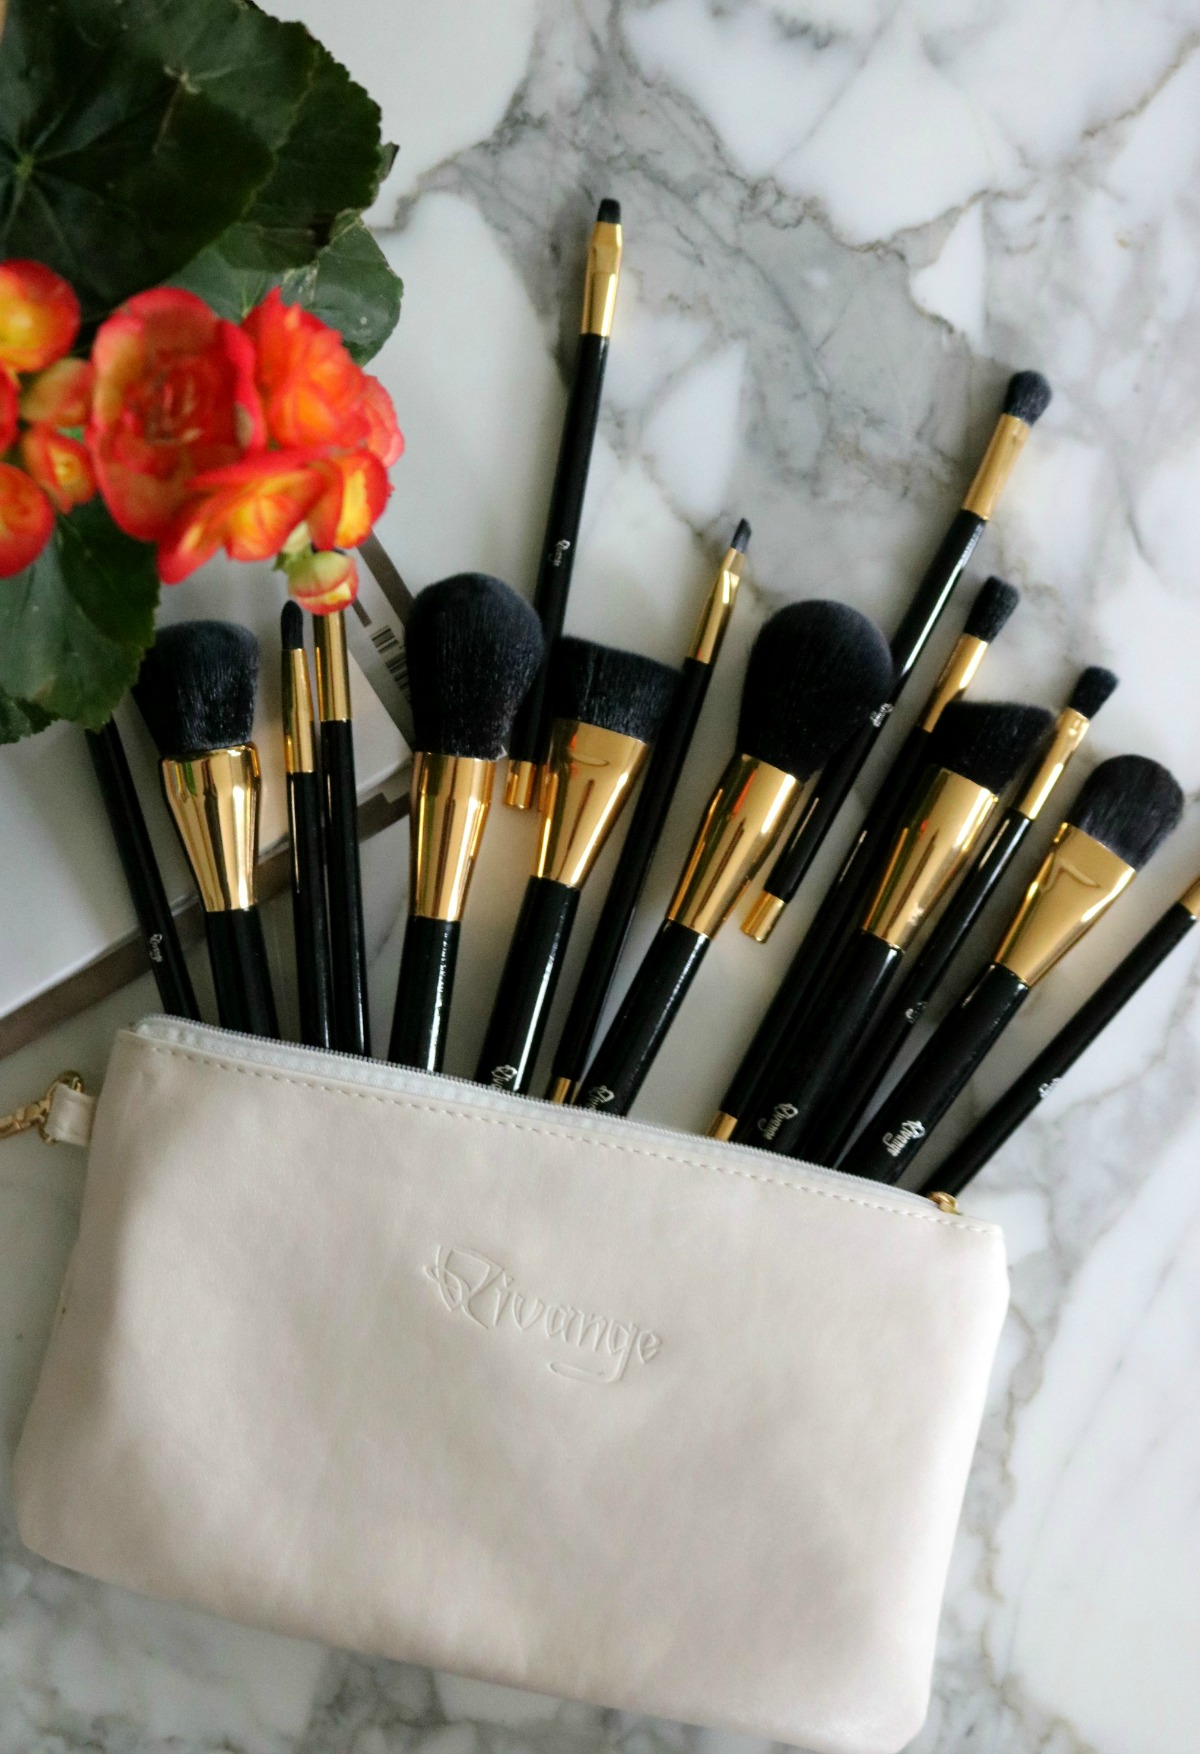 Best of 2017 Post I Qivange Makeup Brushes I DreaminLace.com